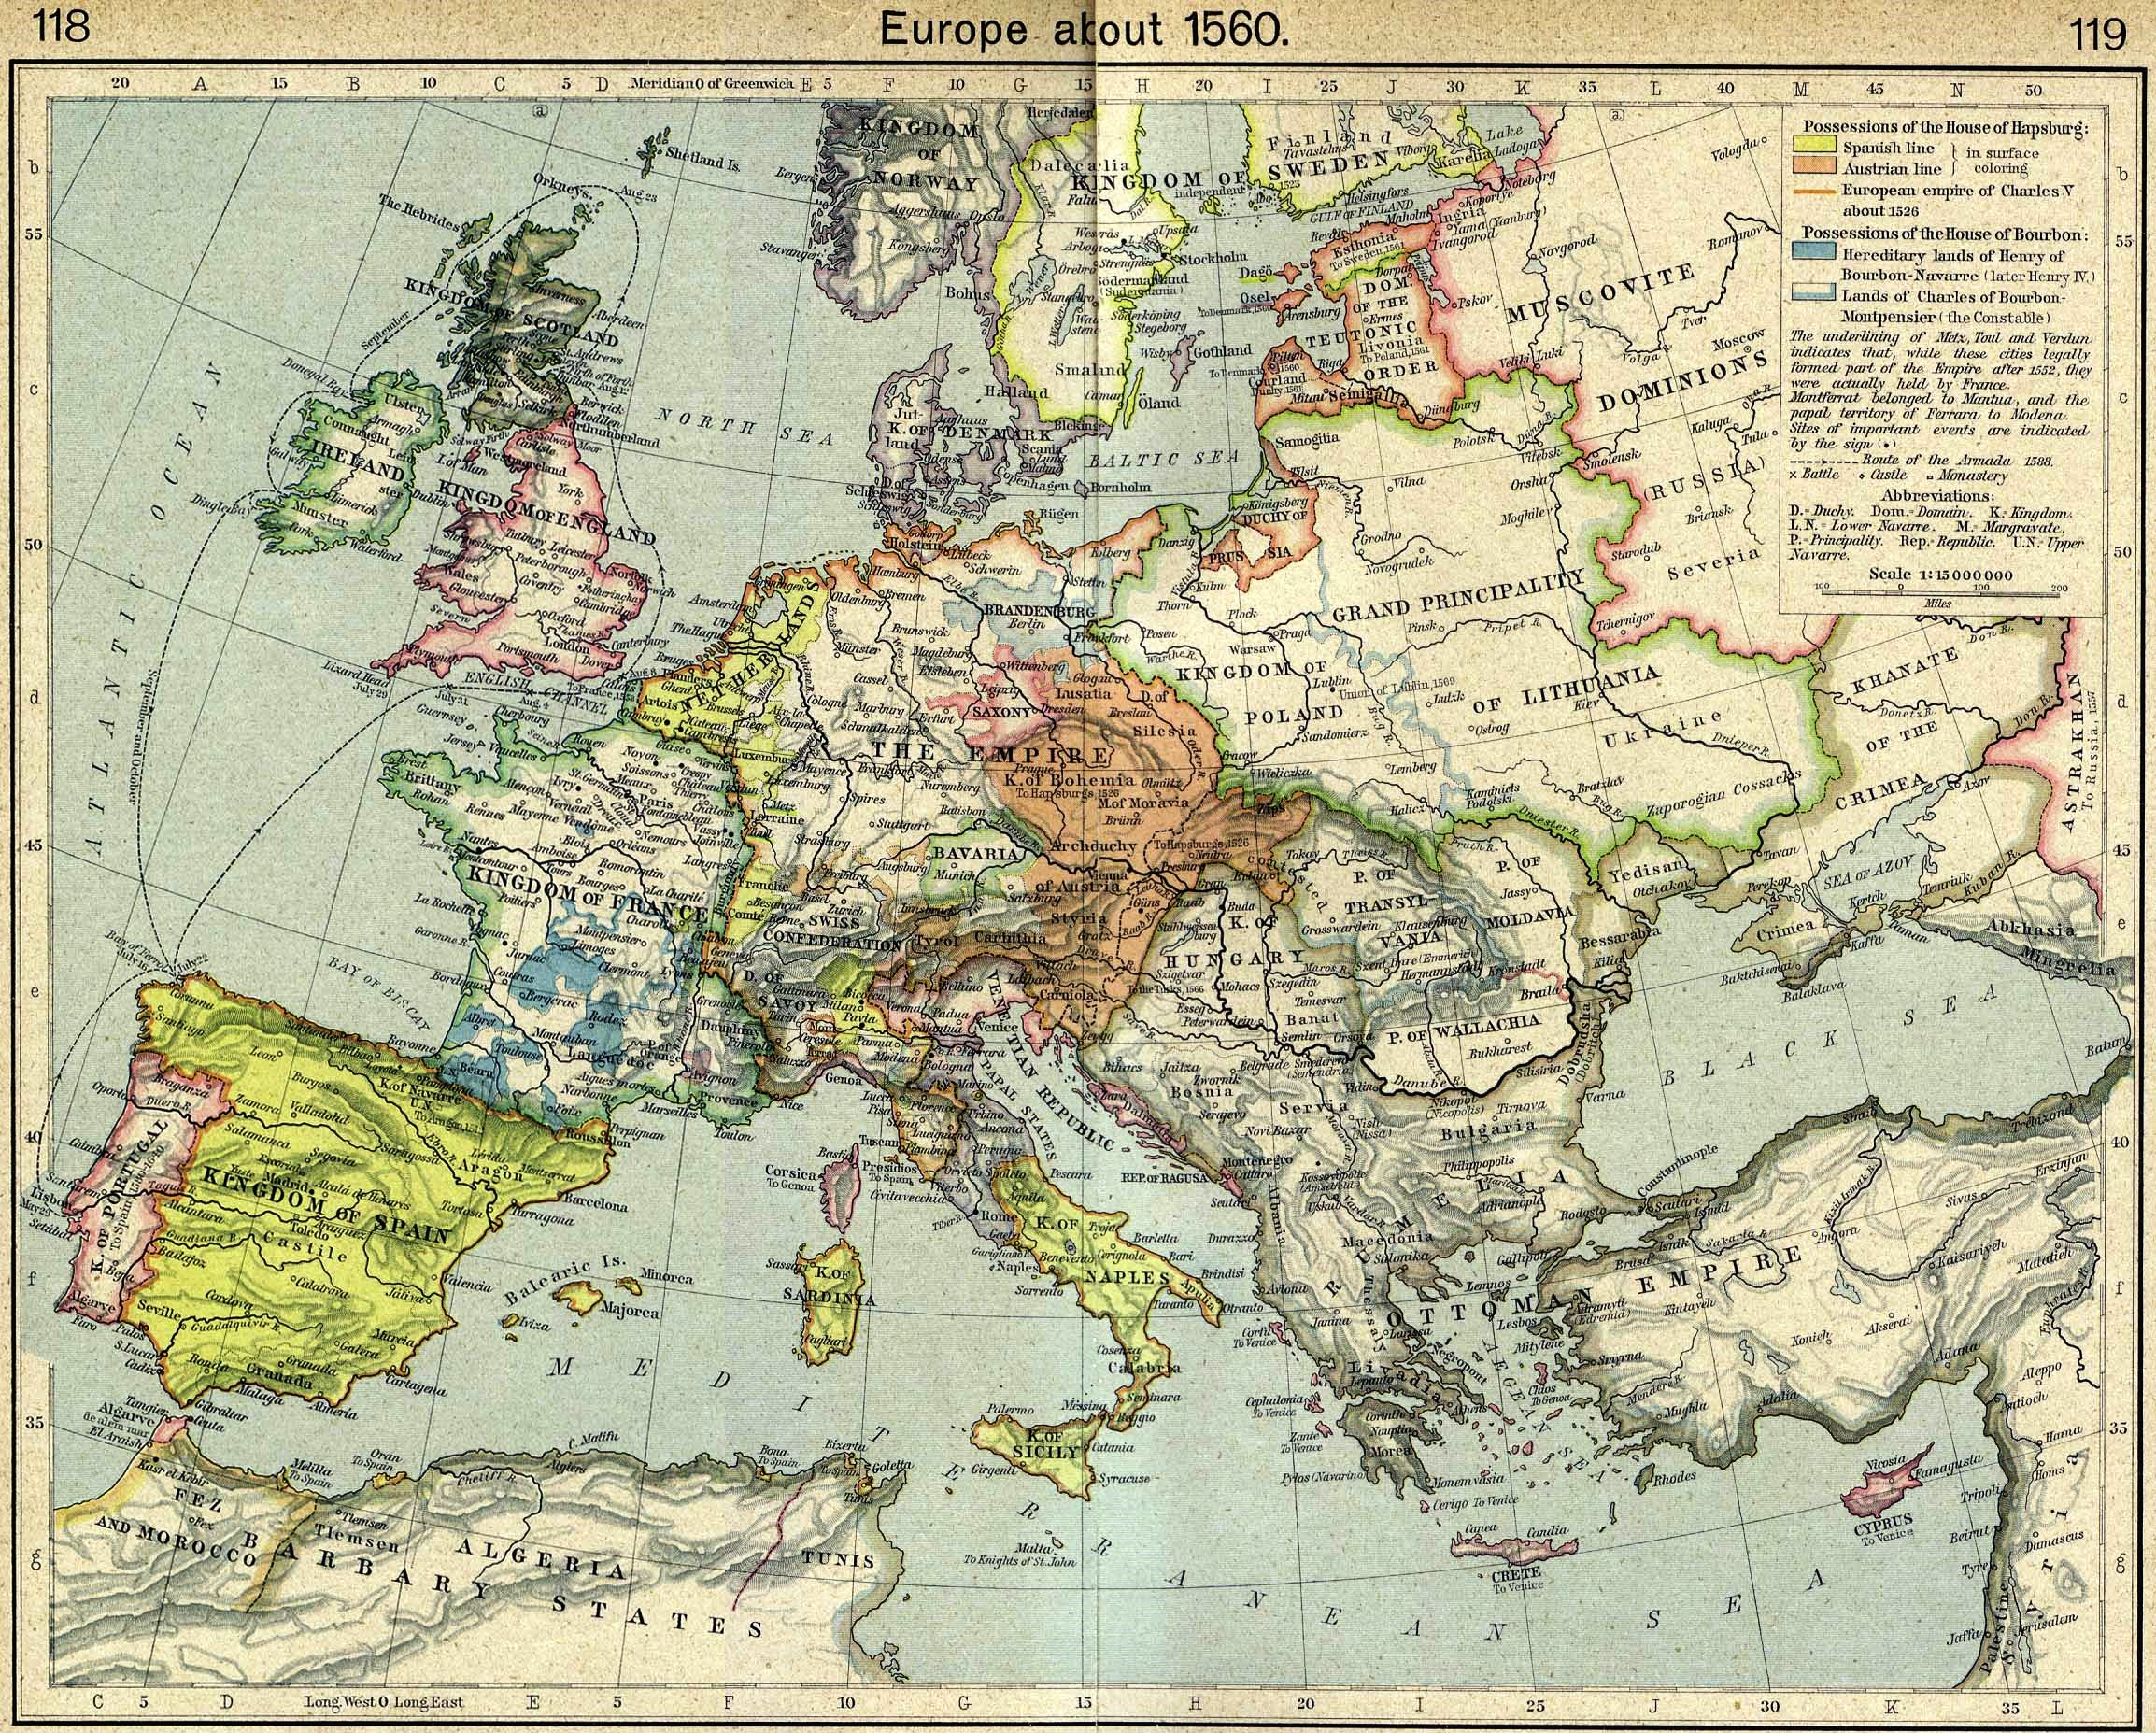 Map Of Europe 1560.File Europe In 1560 Jpg Wikimedia Commons